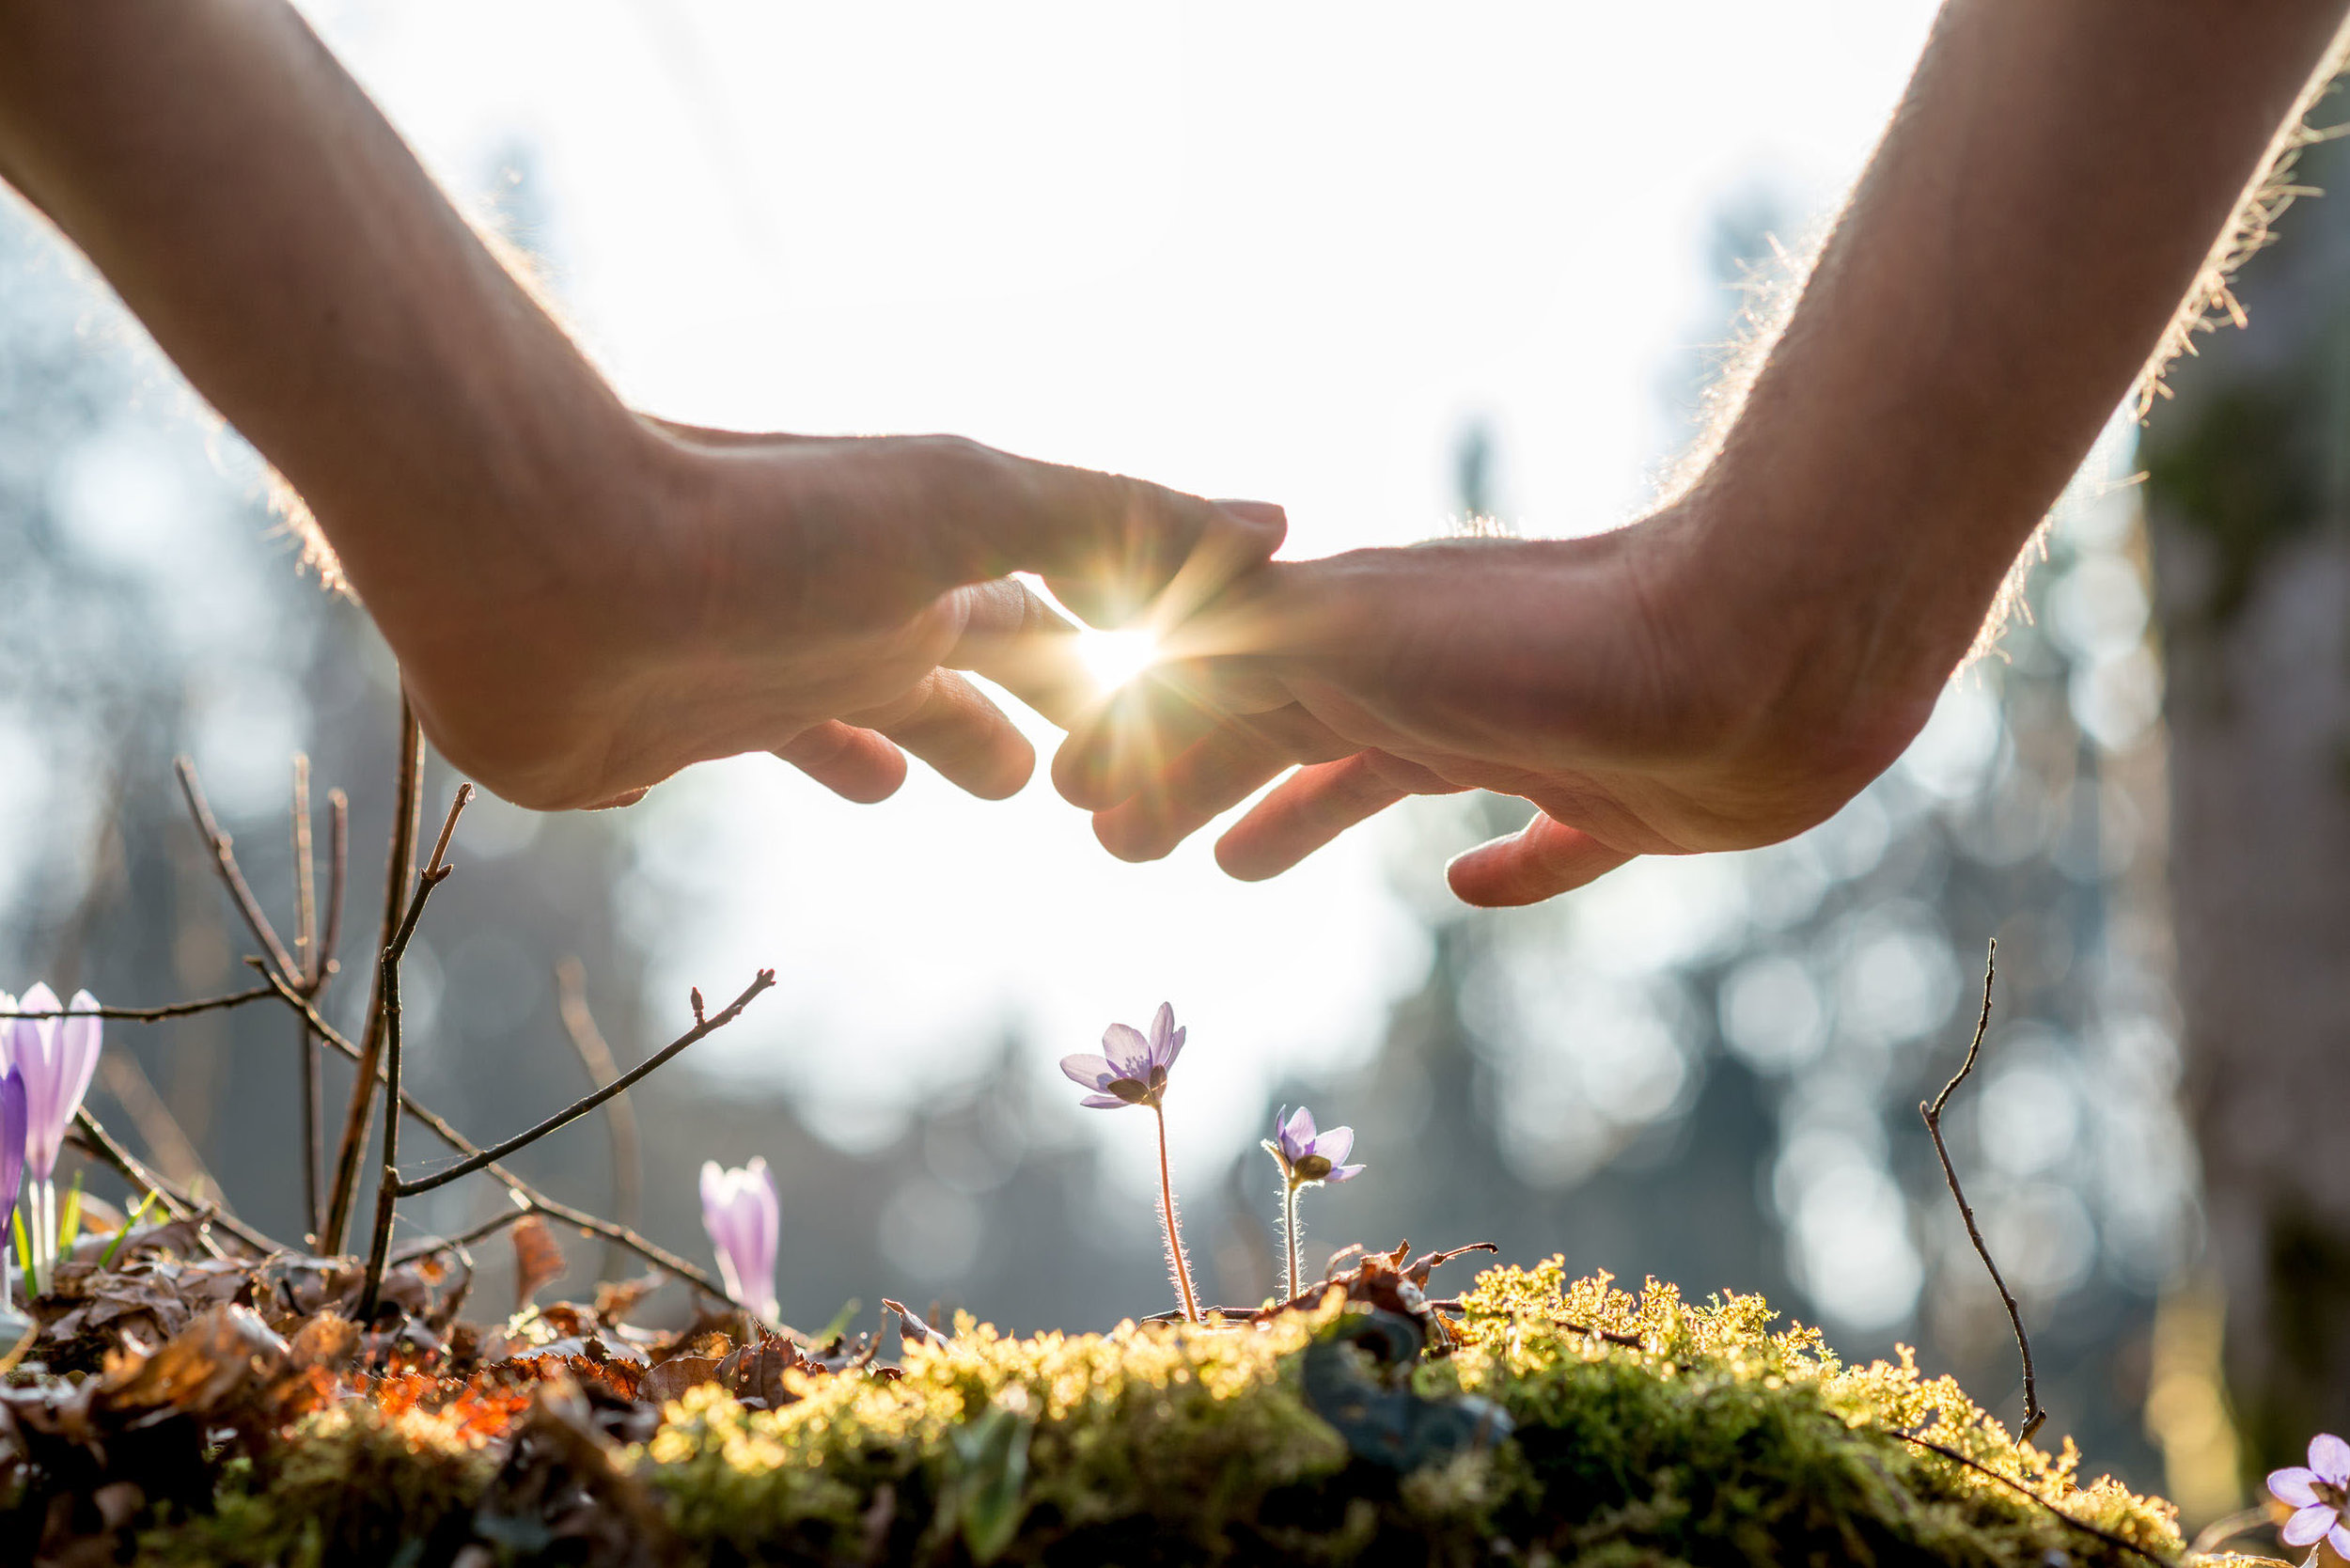 HOLISTIC HEALING - As a medi healer, I've studied many healing forms and blend them together to create a healing energy that flows best for you based on your particular needs and desires. Each session is created just for you.